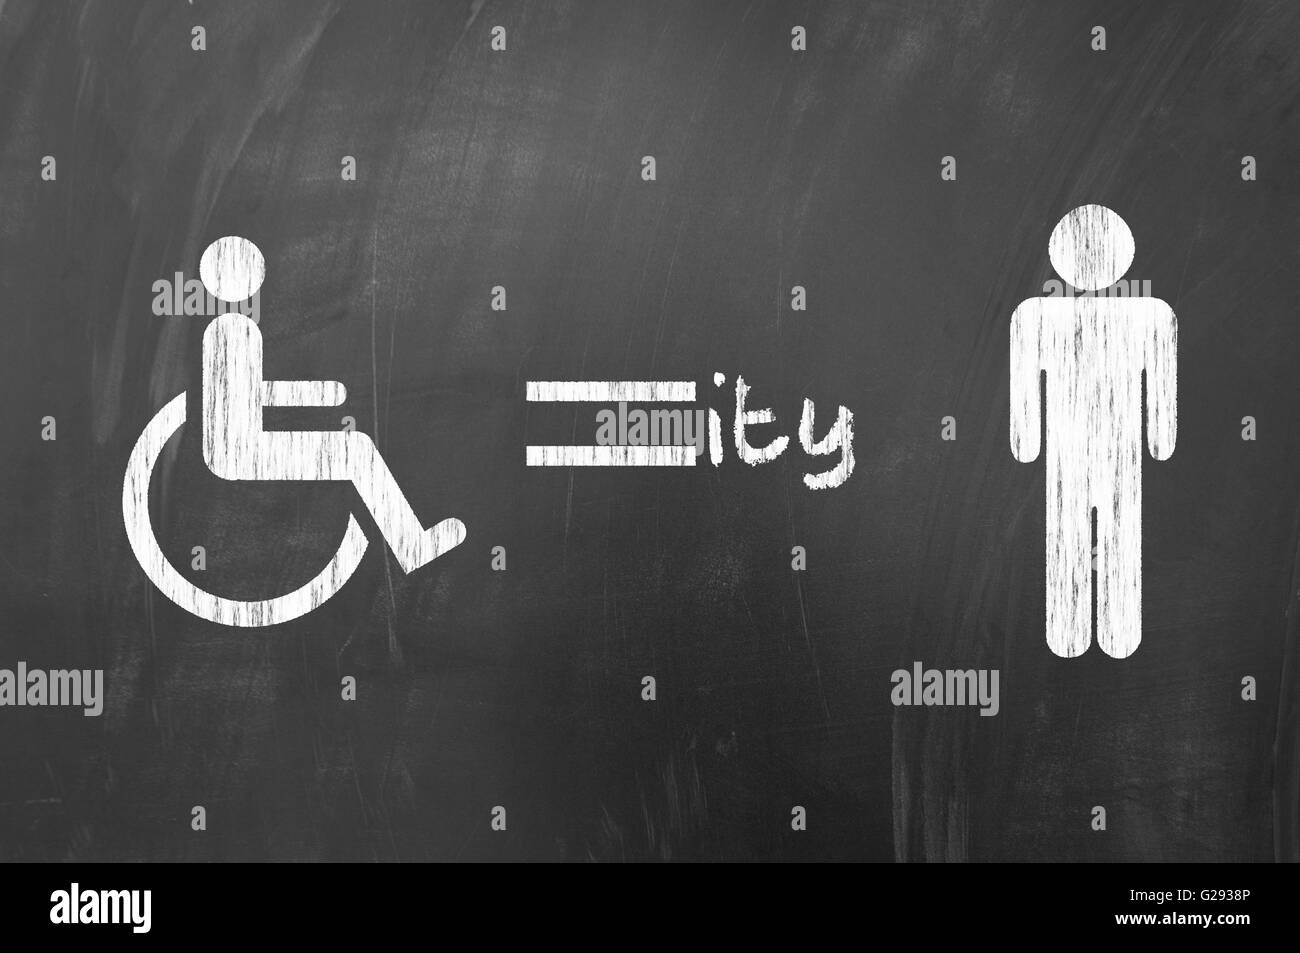 Disability equality concept on blackboard - Stock Image